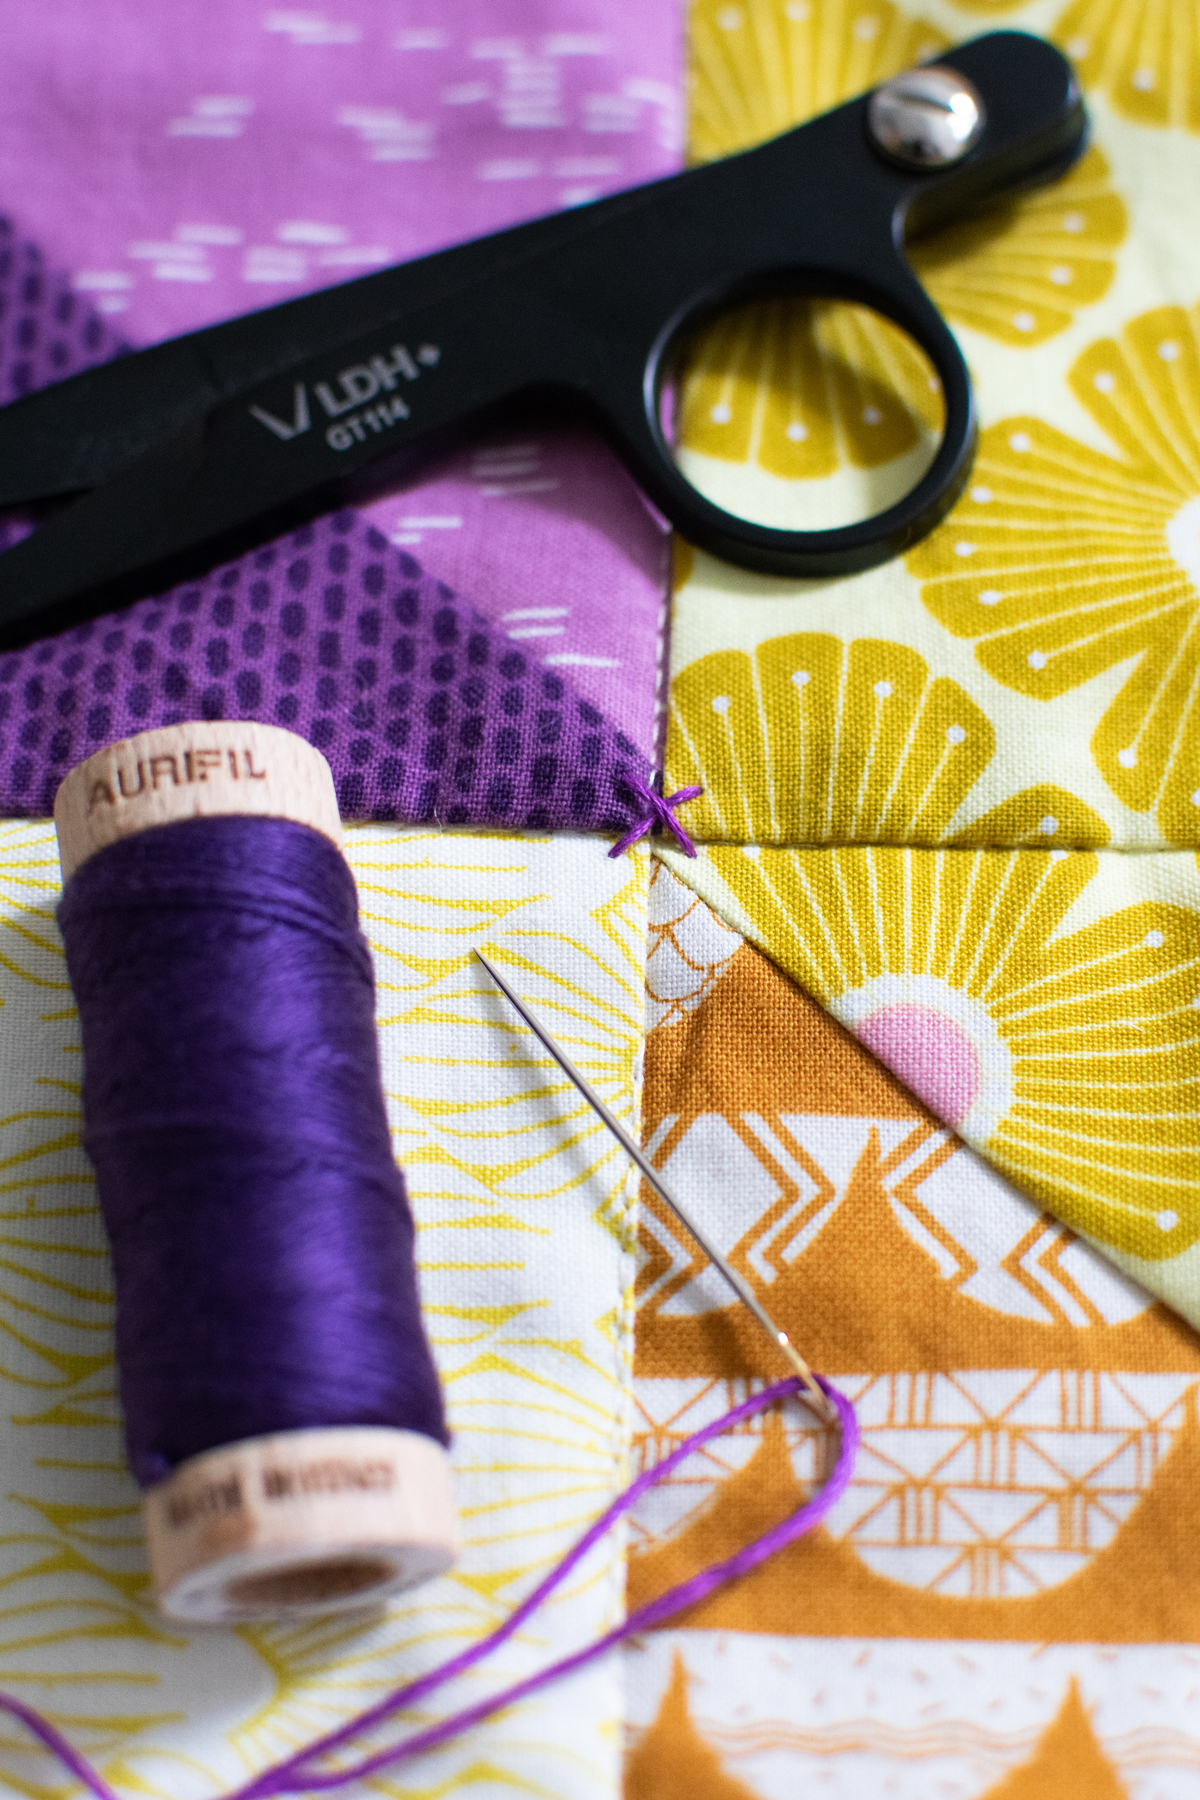 Making a patchwork design without a pattern